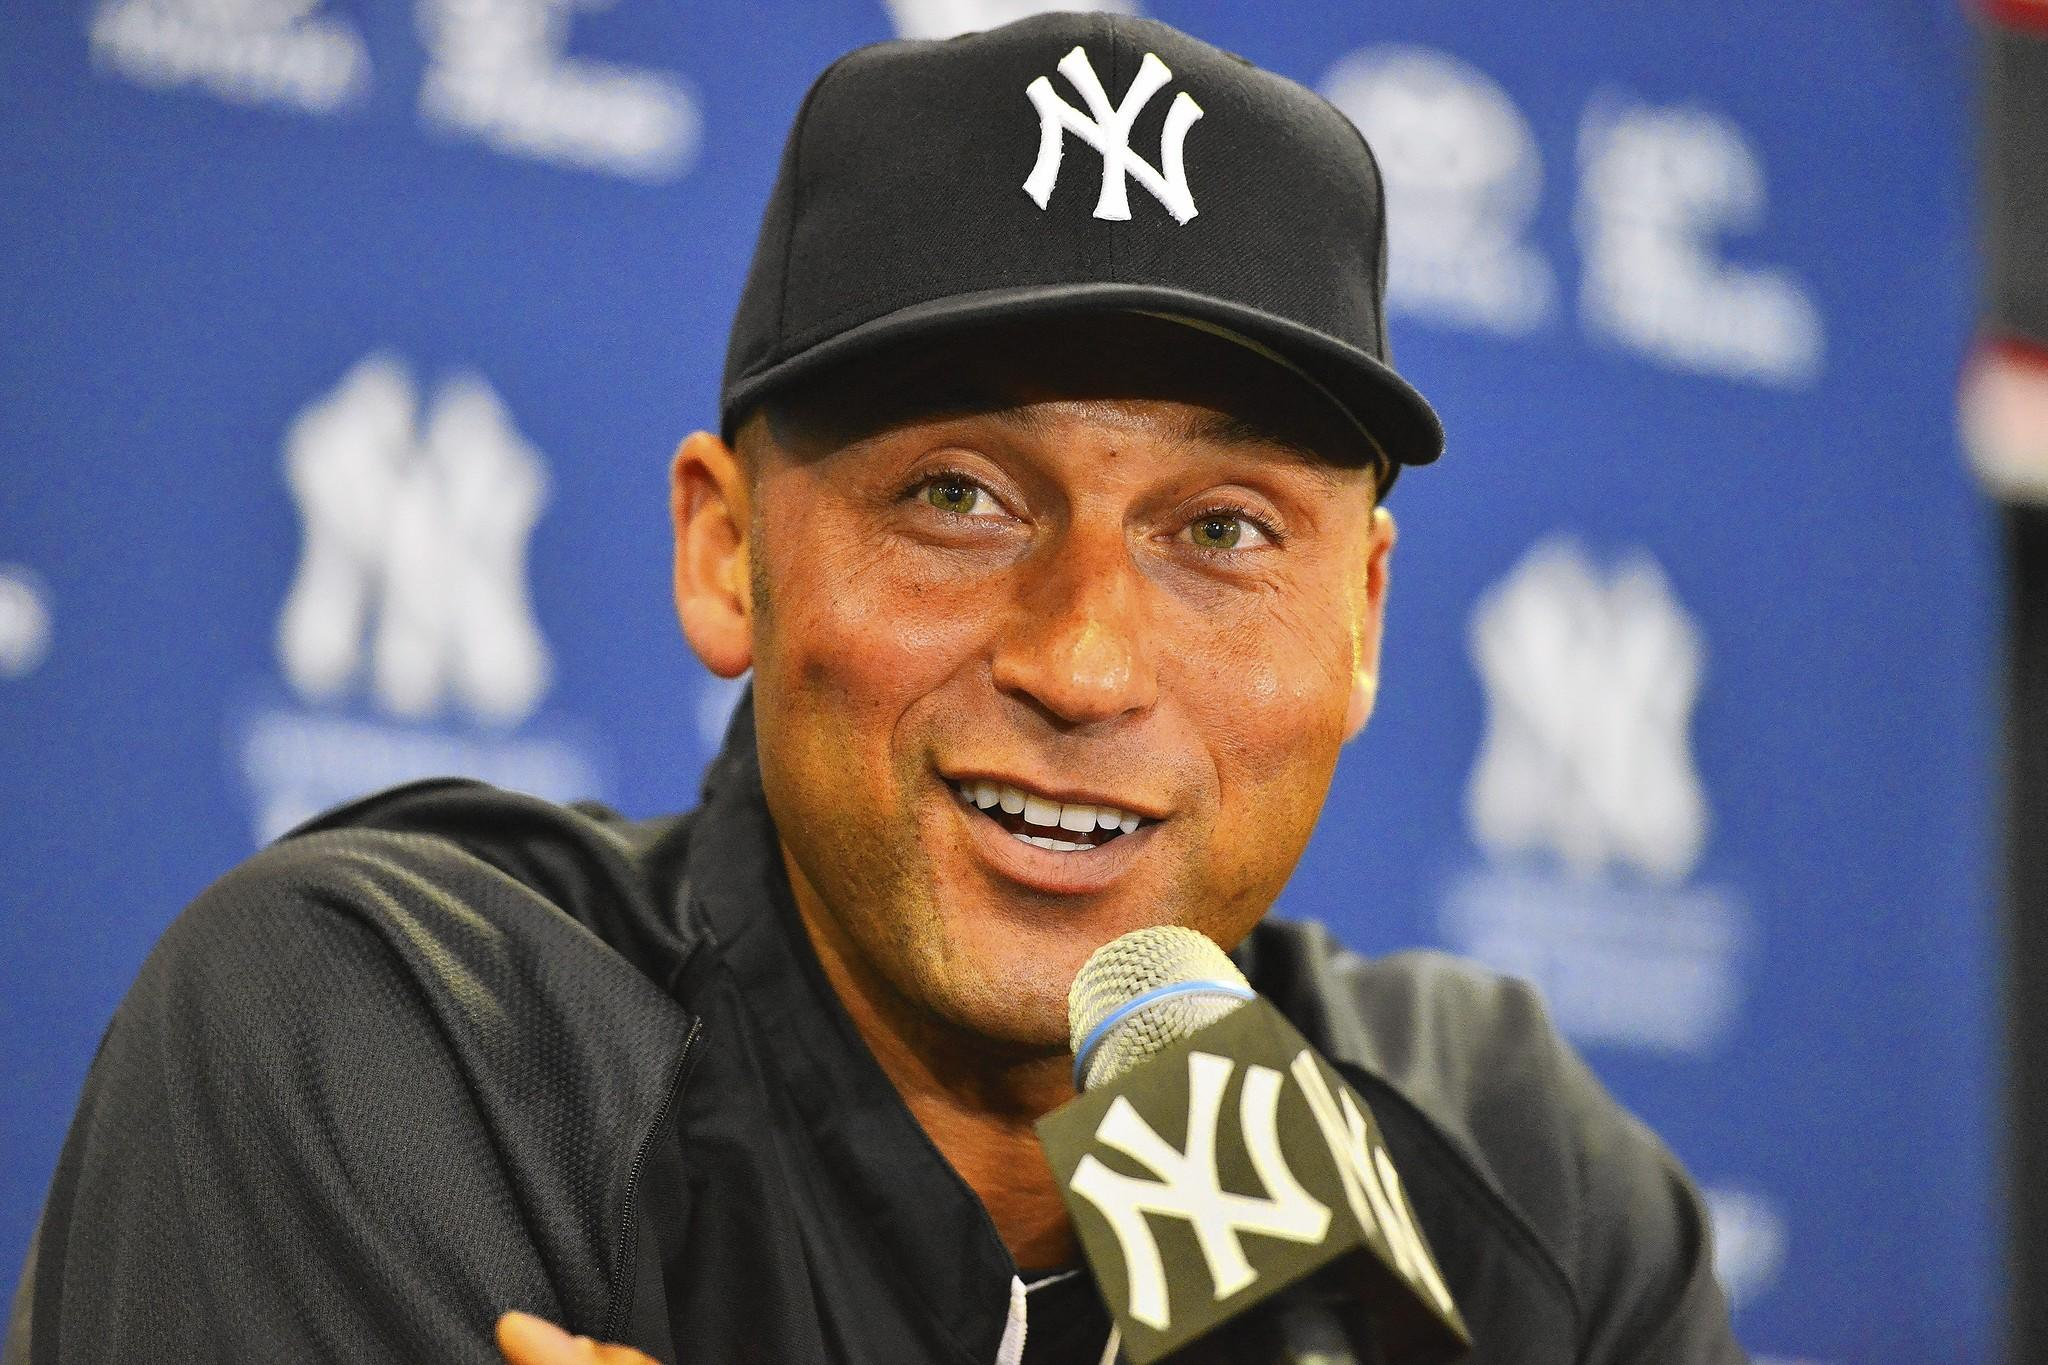 Feb 19, 2014; Tampa, FL, USA; New York Yankees infielder Derek Jeter (2) speaks to the media during an media availability at George M. Steinbrenner Field.